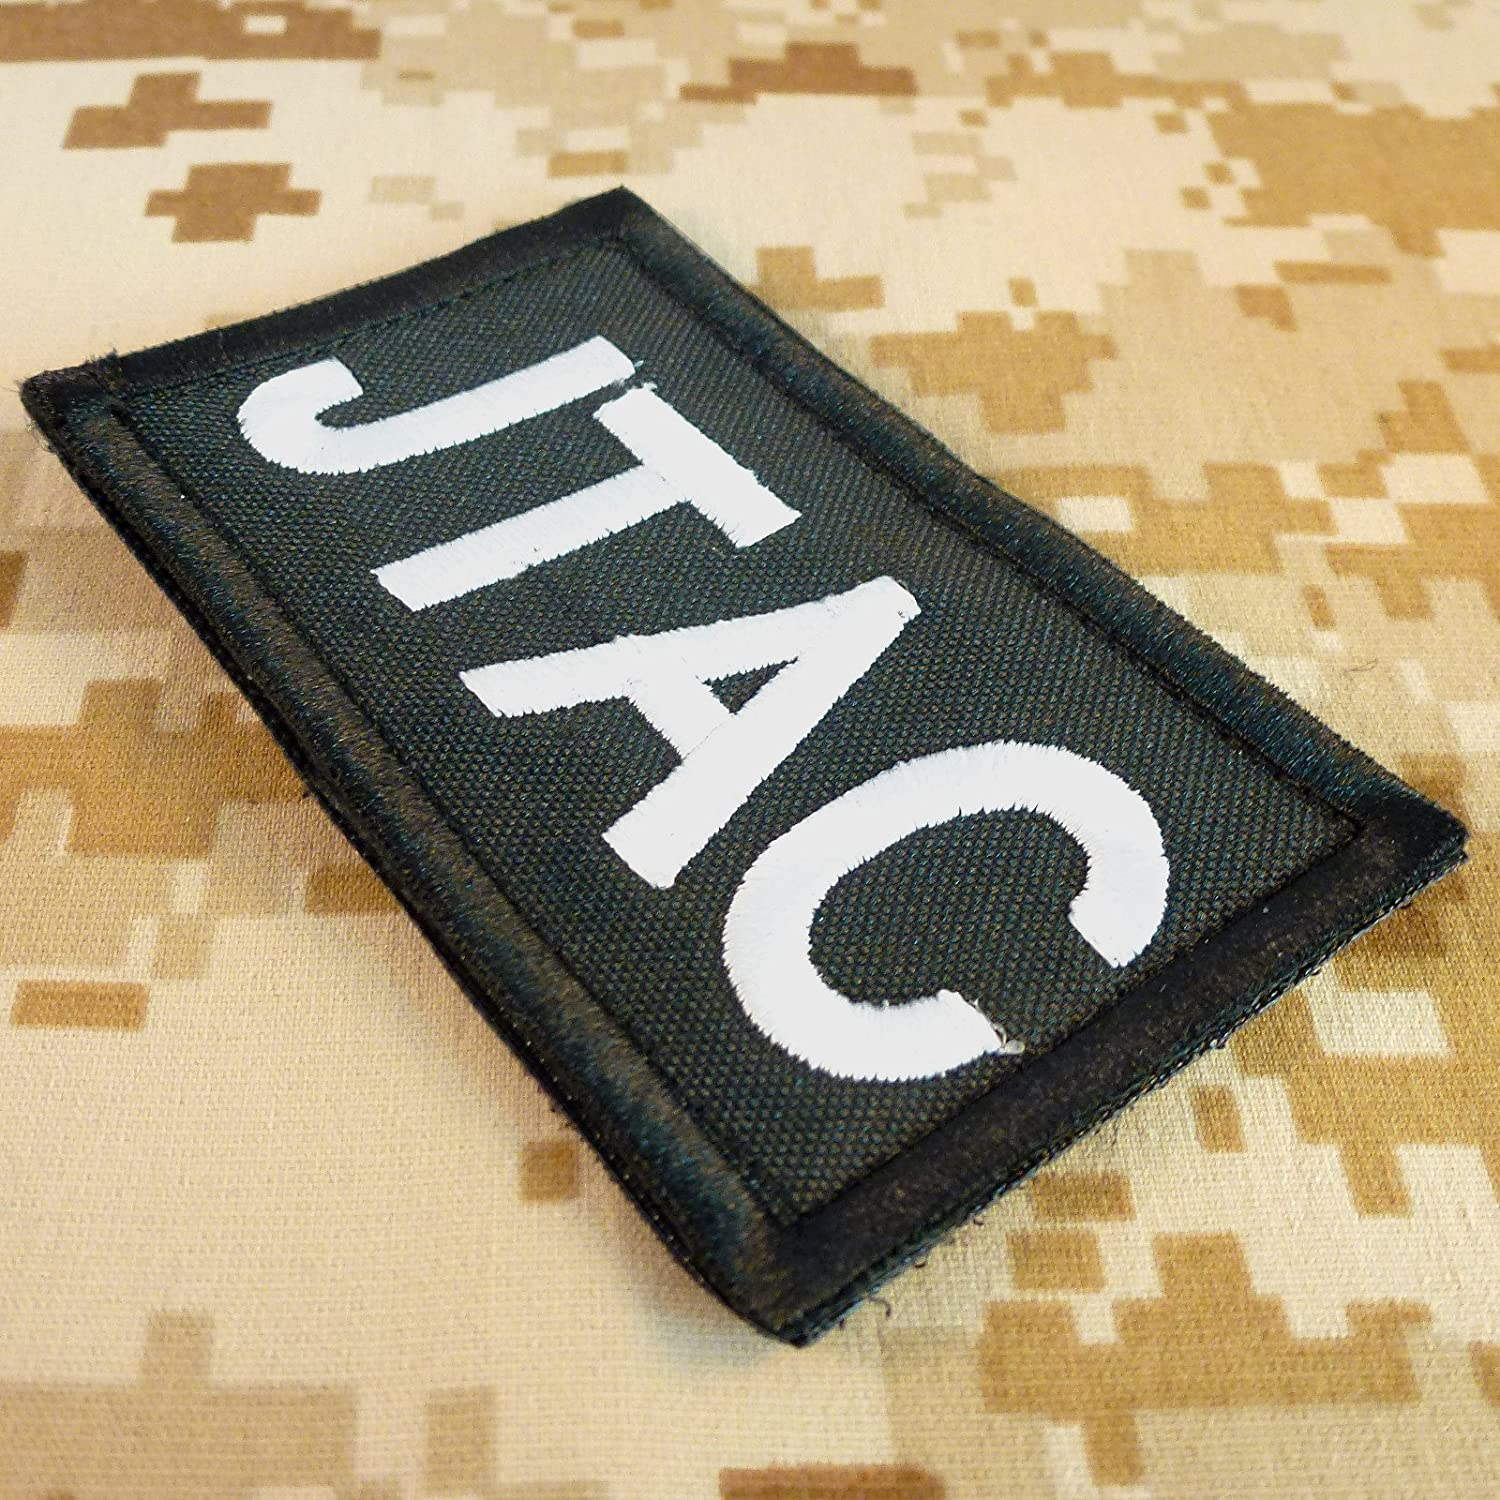 Joint Armée Jtac Air Fac Support Controller Terminal Tactical Attack 8Nnw0m